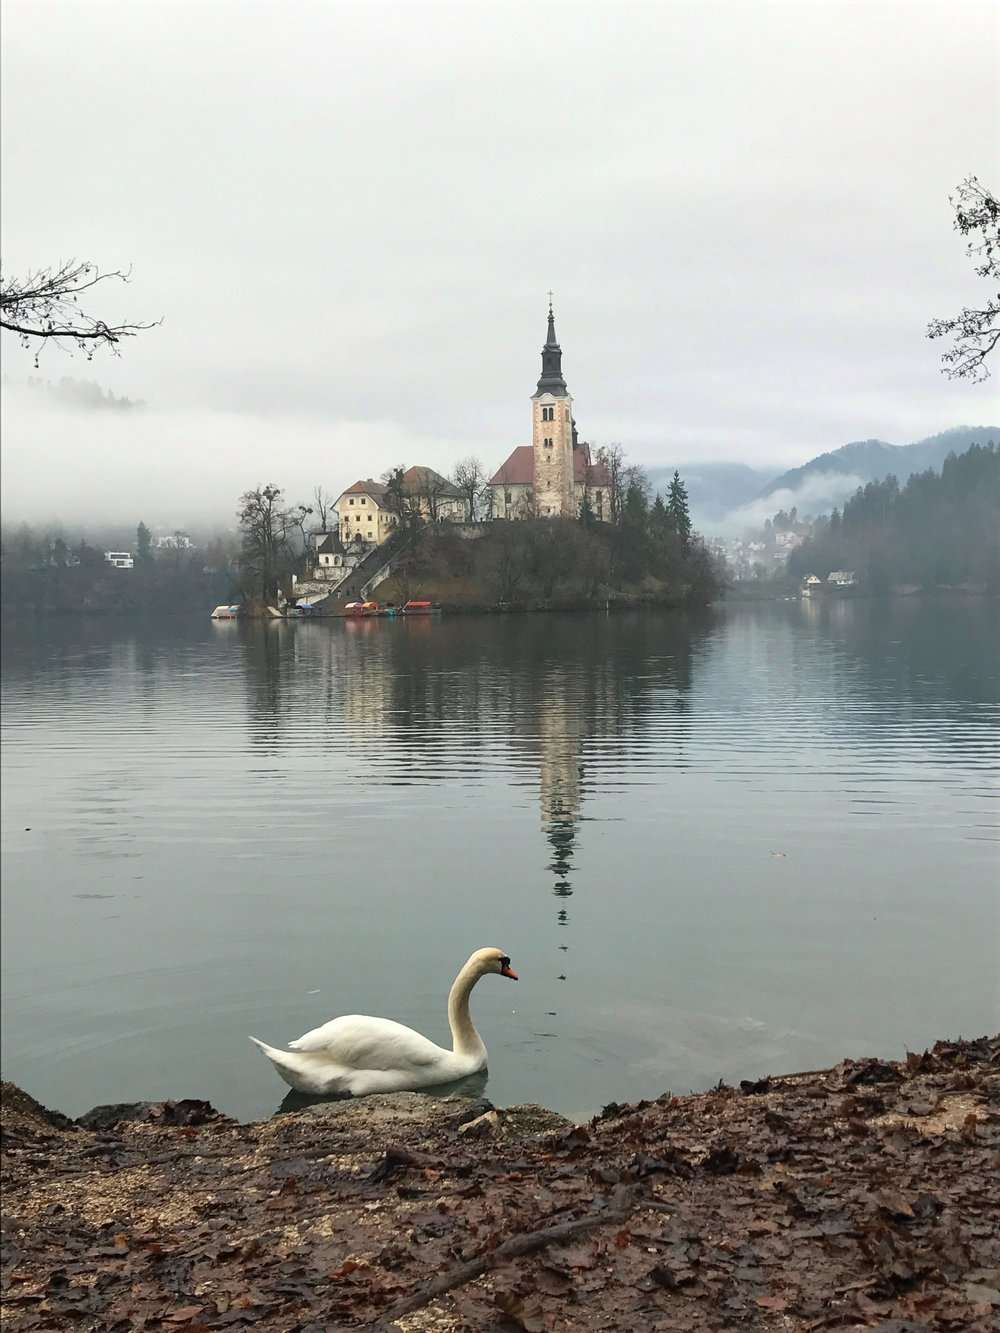 The Church on the Island in Lake Bled